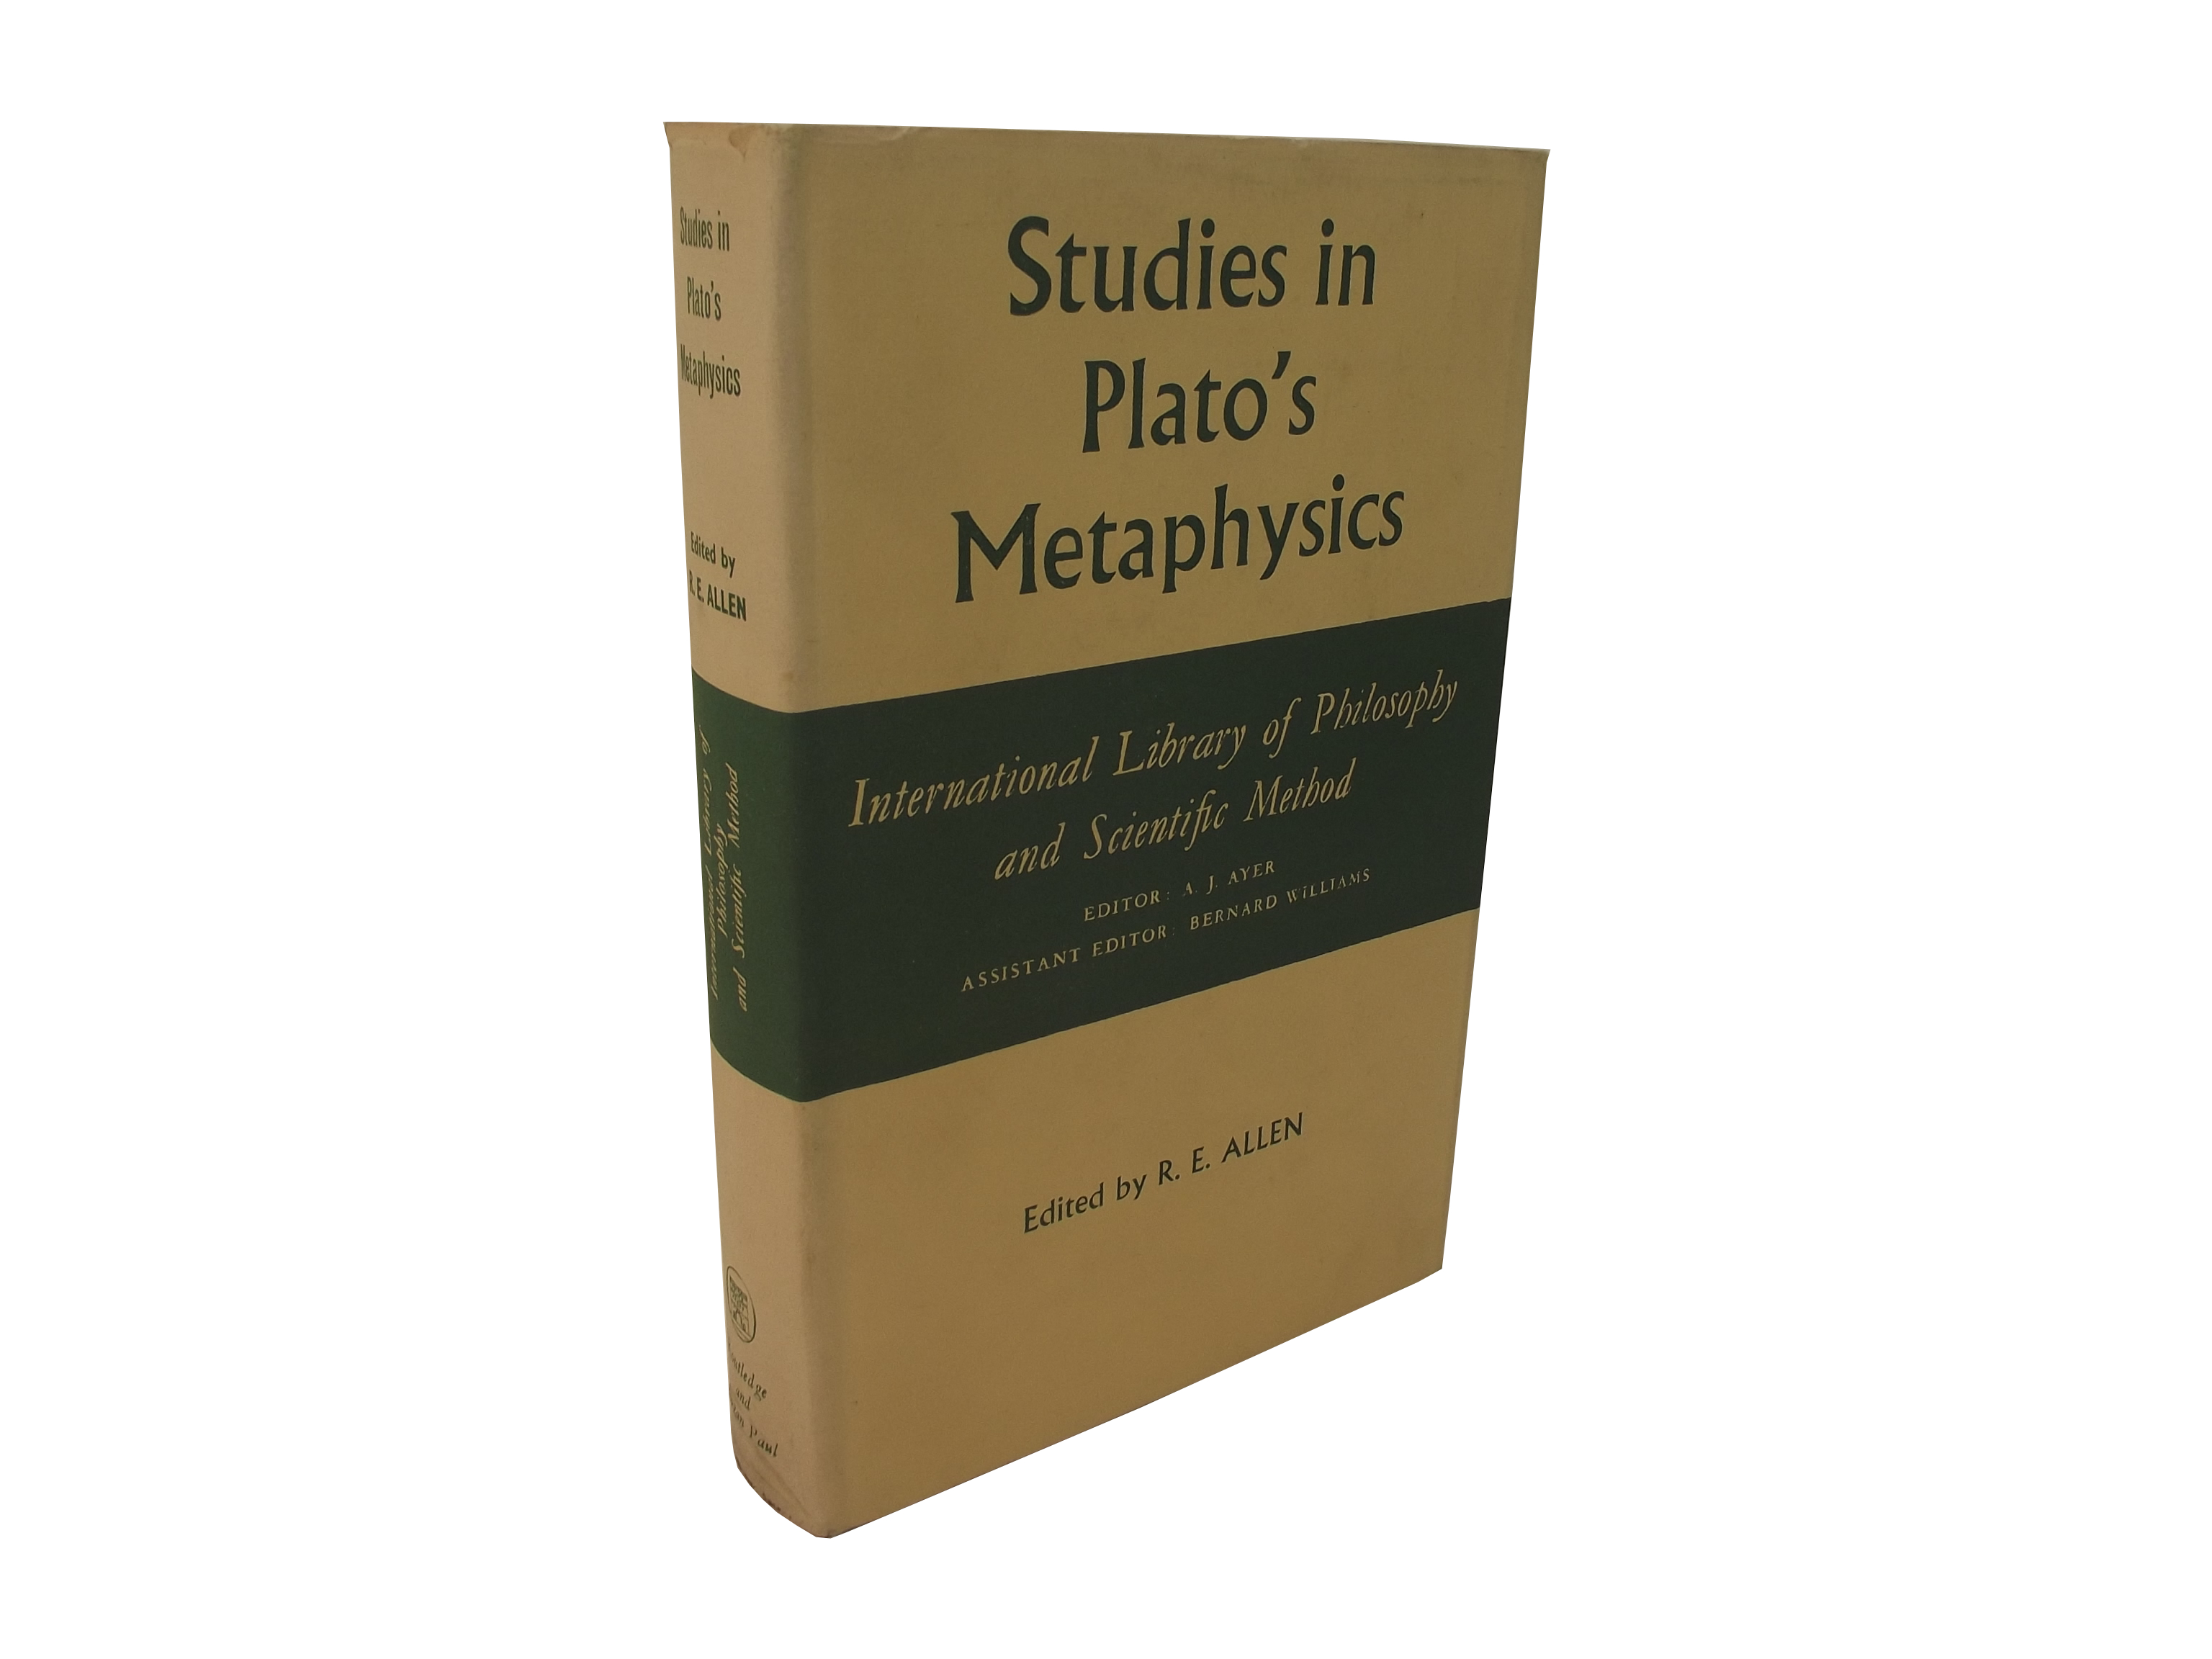 Studies in Plato's Metaphysics